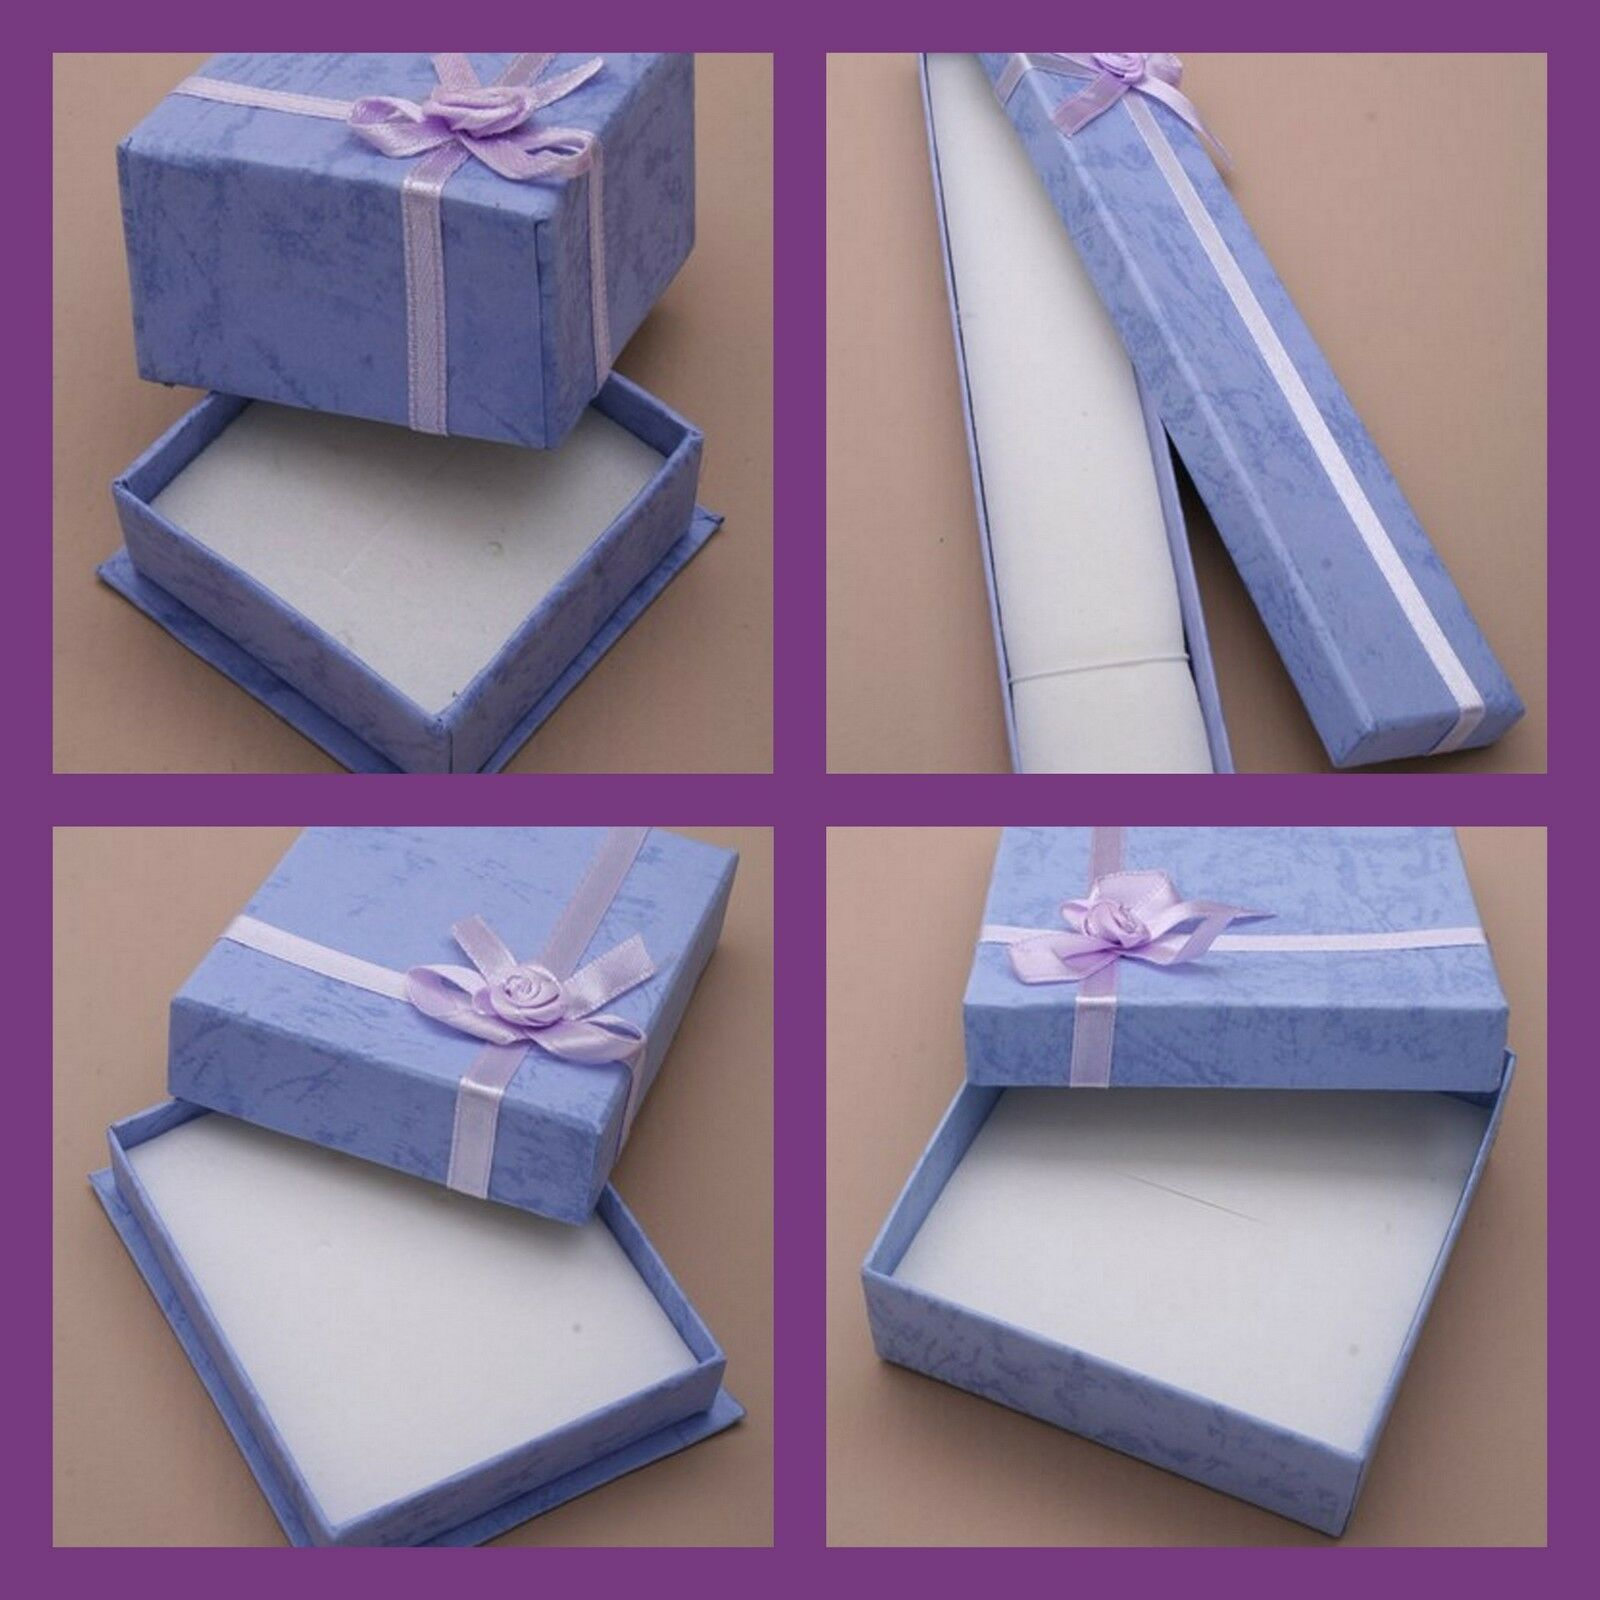 Jewellery - BLUE JEWELLERY GIFT BOXES FOR RING EARRINGS BRACELET NECKLACE CHOICE OF SIZES